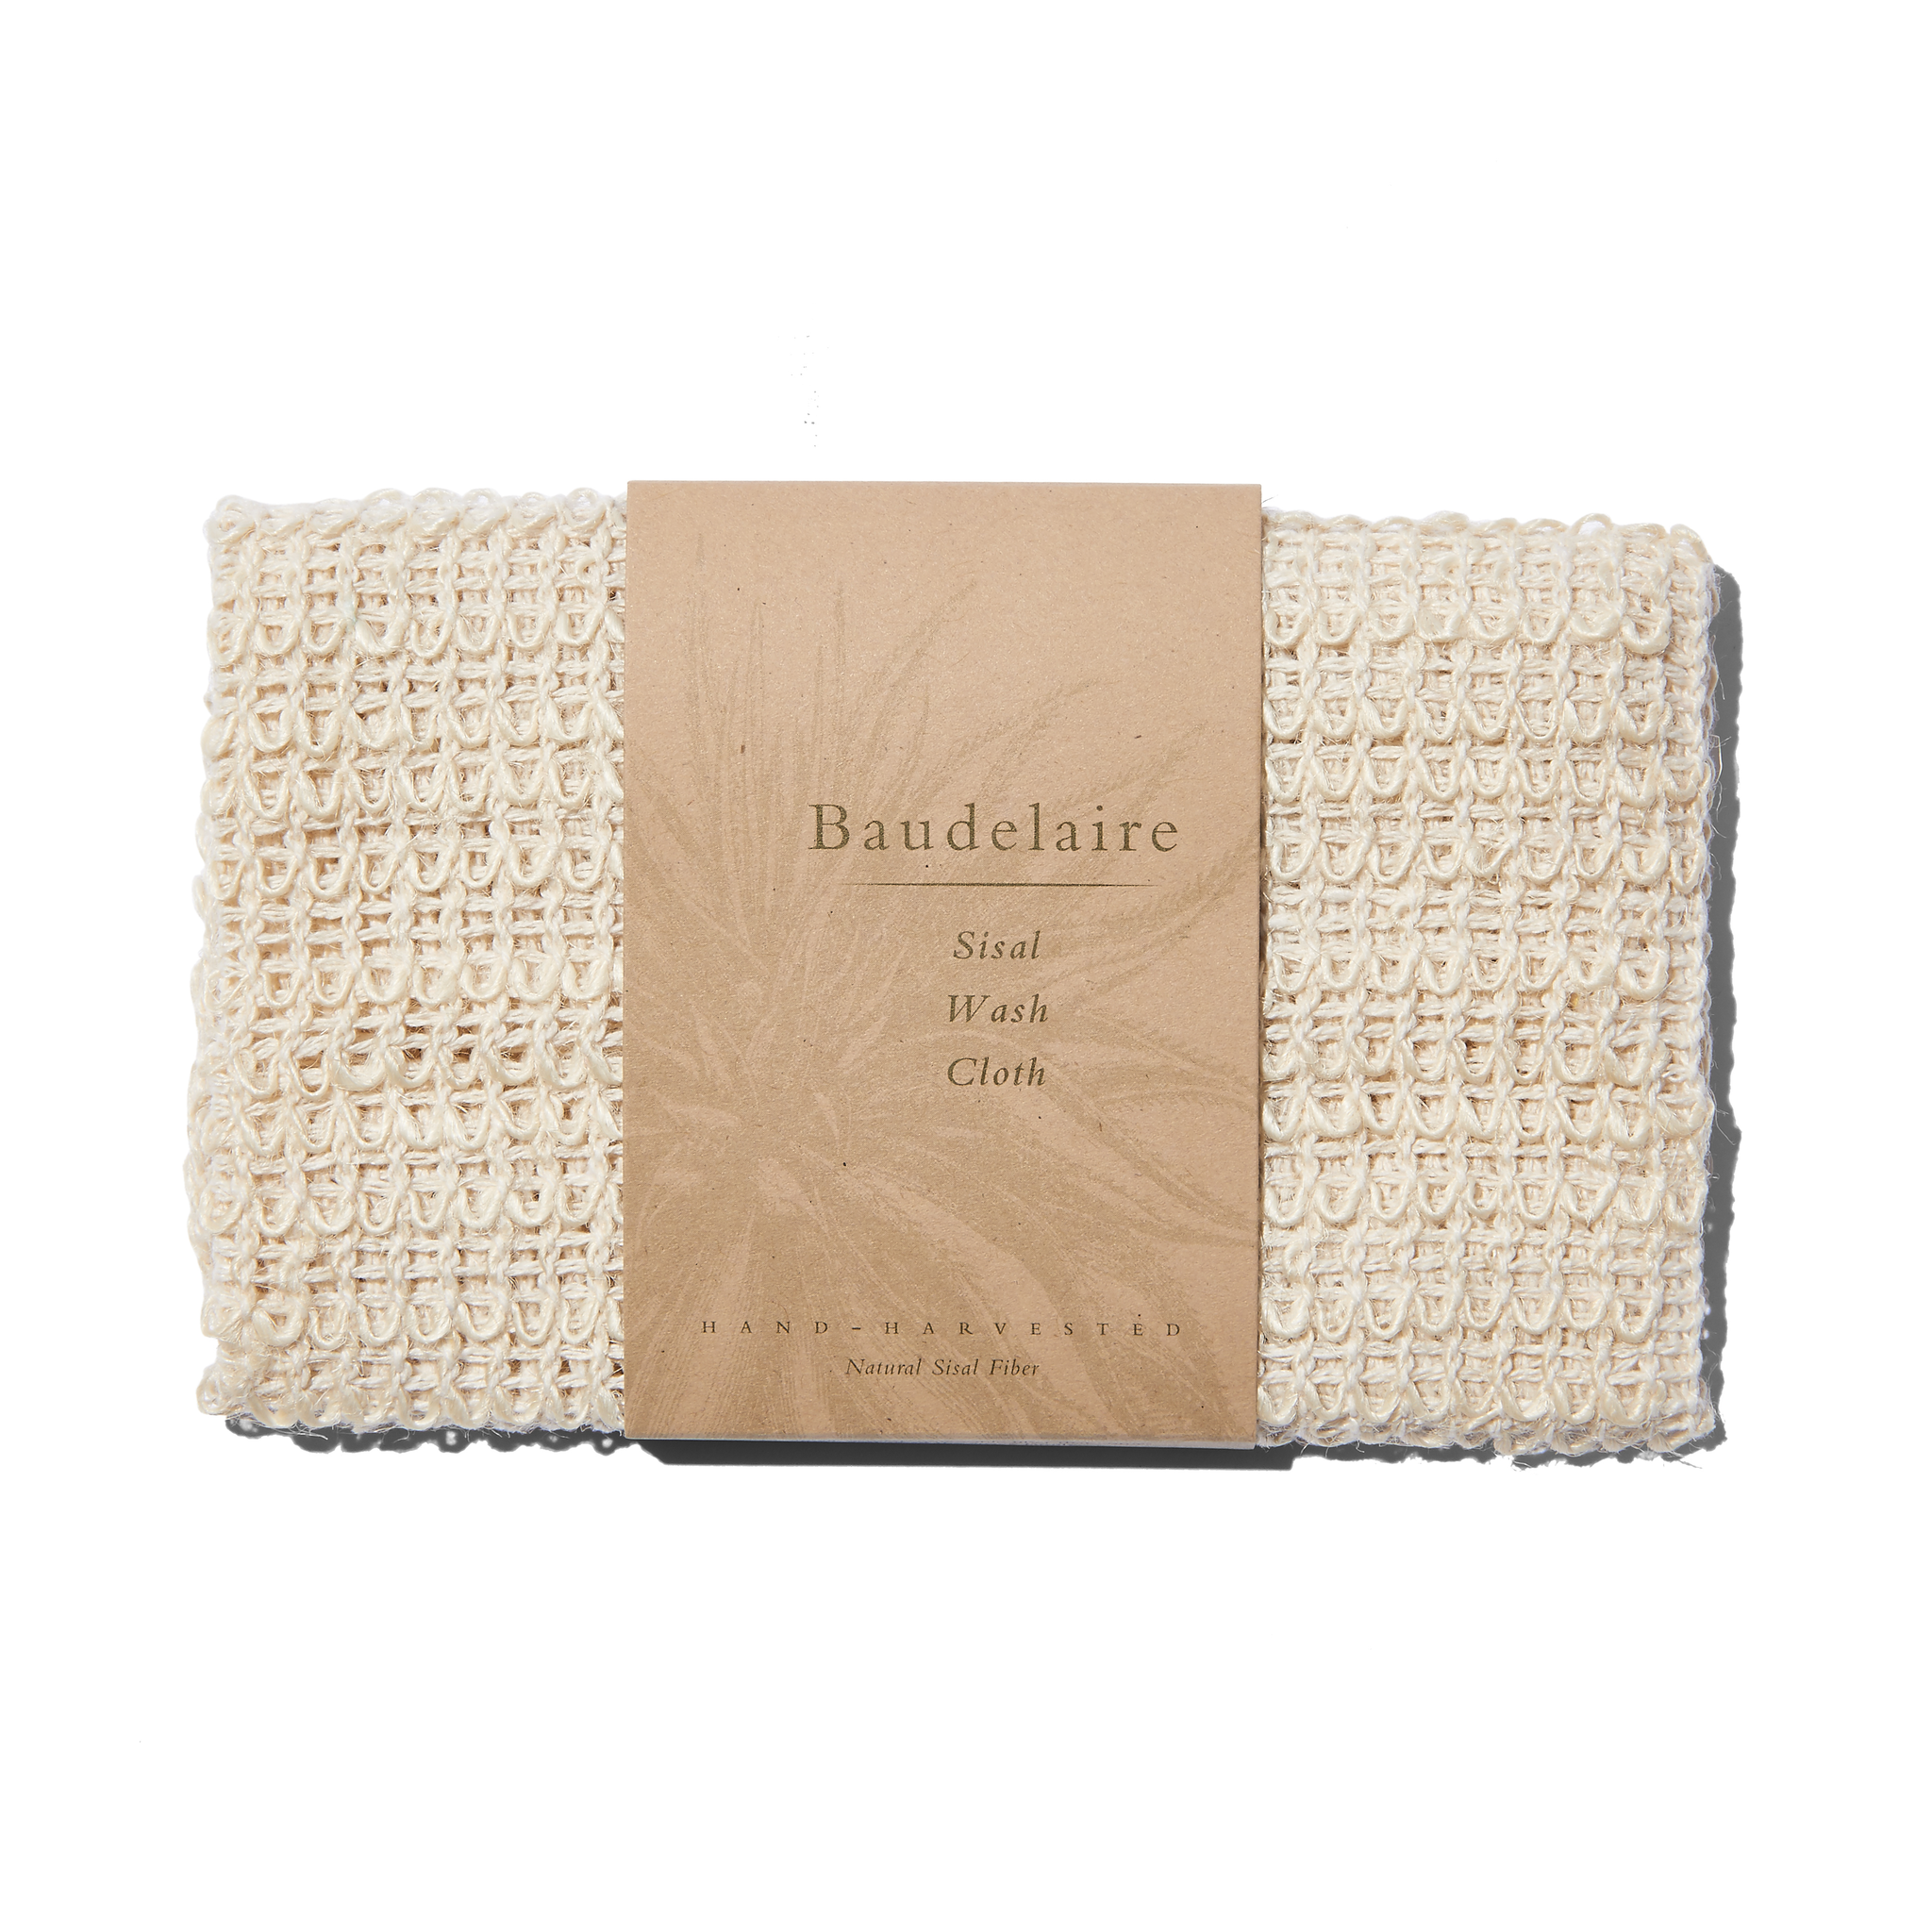 792703138431 - Baudelaire Wash Cloth